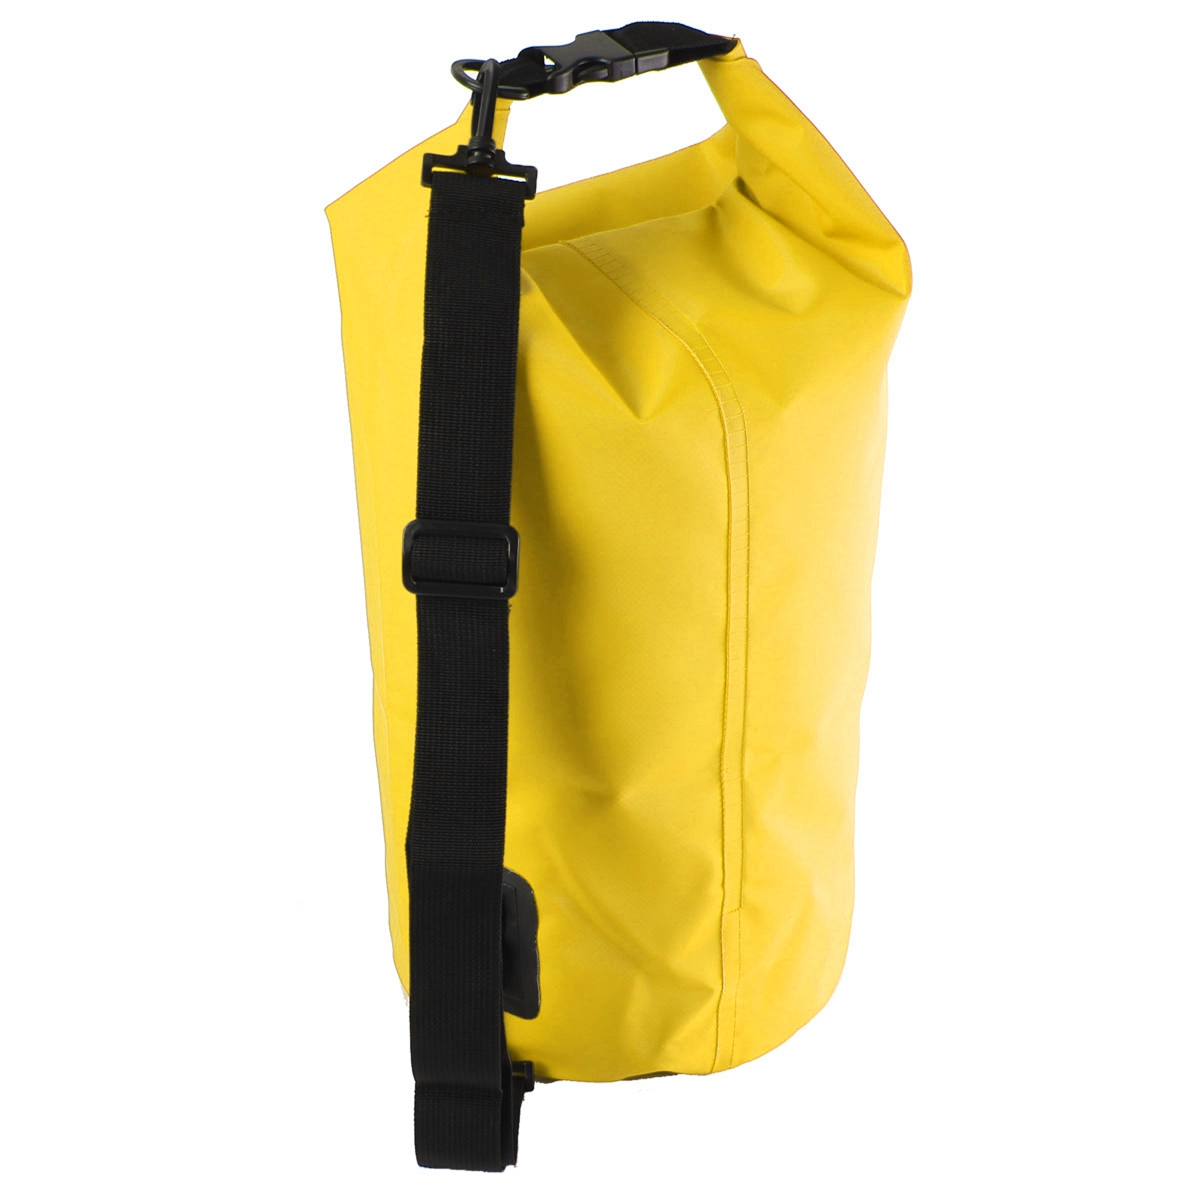 waterproof singles & personals Dating & dining personals just i am not looking for a romantic relationshipjust friends waterproof bag and swimming wear.